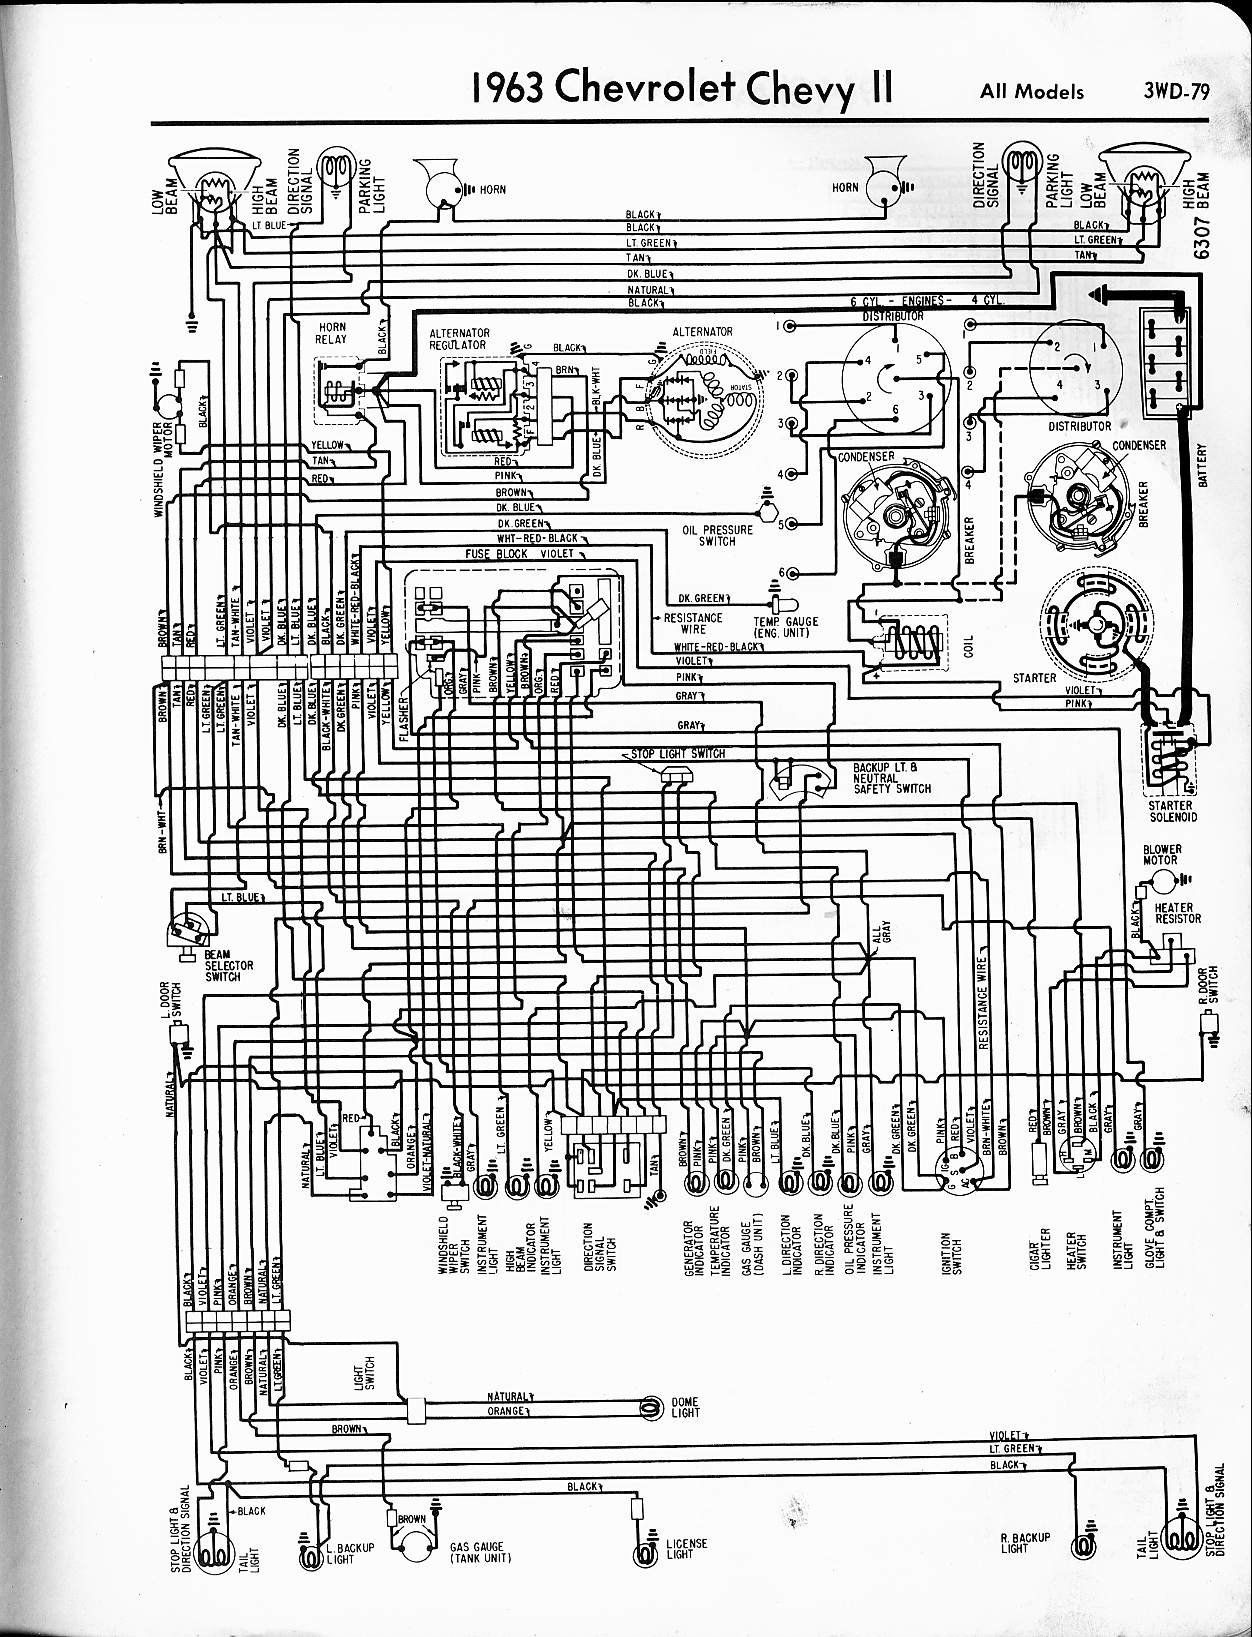 1967 1972 Chevy Truck On 1970 Chevy Nova Wiring Diagram Besides 1967 inside  1972 Chevy Truck Wiring Diagram | Ford electric car, Diagram design, Chevy  trucks